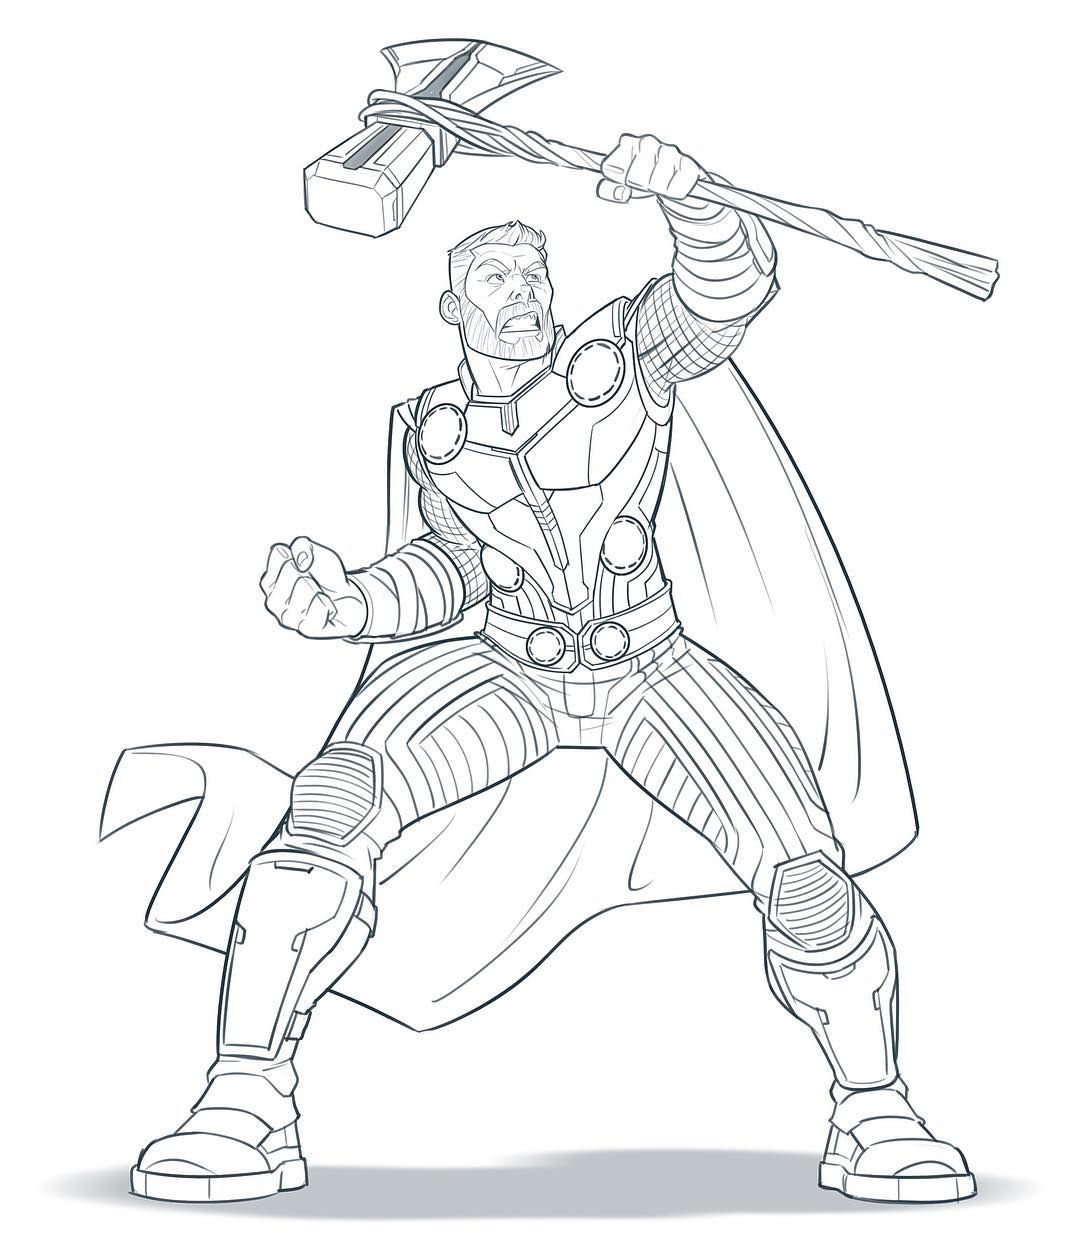 Progress Has Been A Bit Slow On My Avengers 4 Artwork But Today I Was Able To Draw Thor Wielding Stormbr Thor Artwork Marvel Coloring Superhero Coloring Pages